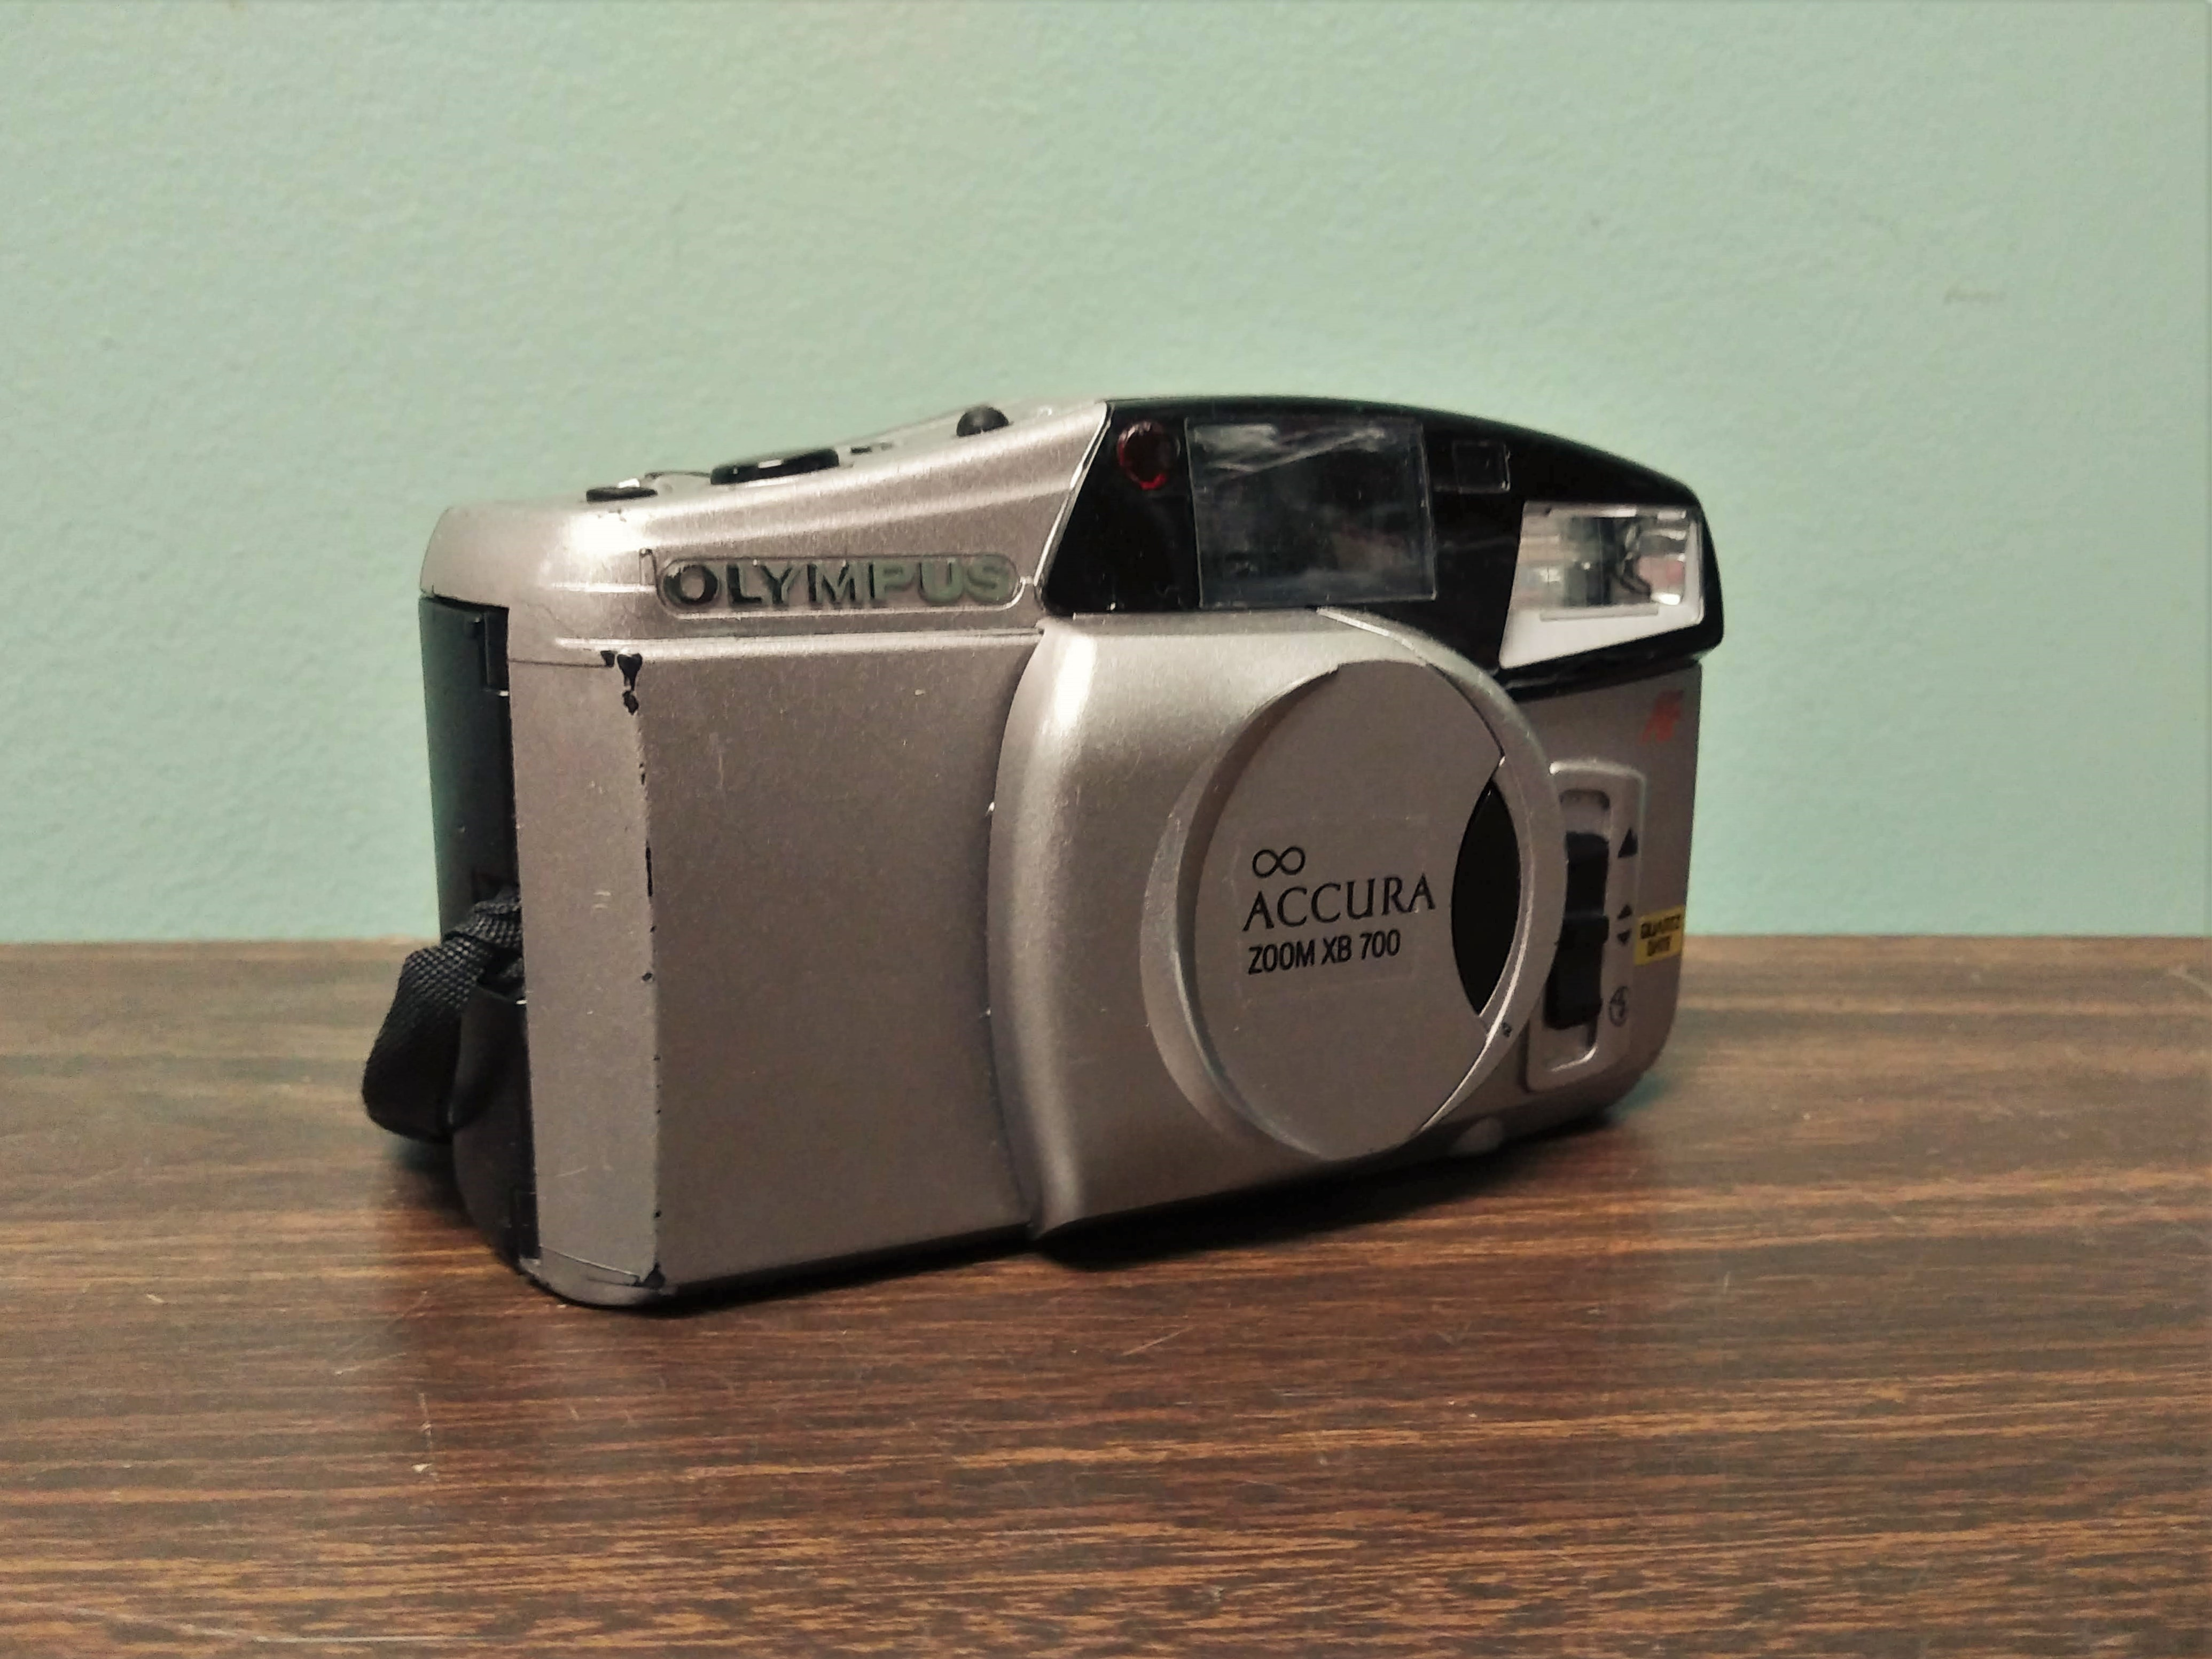 Olympus Point-and-Shoot Camera